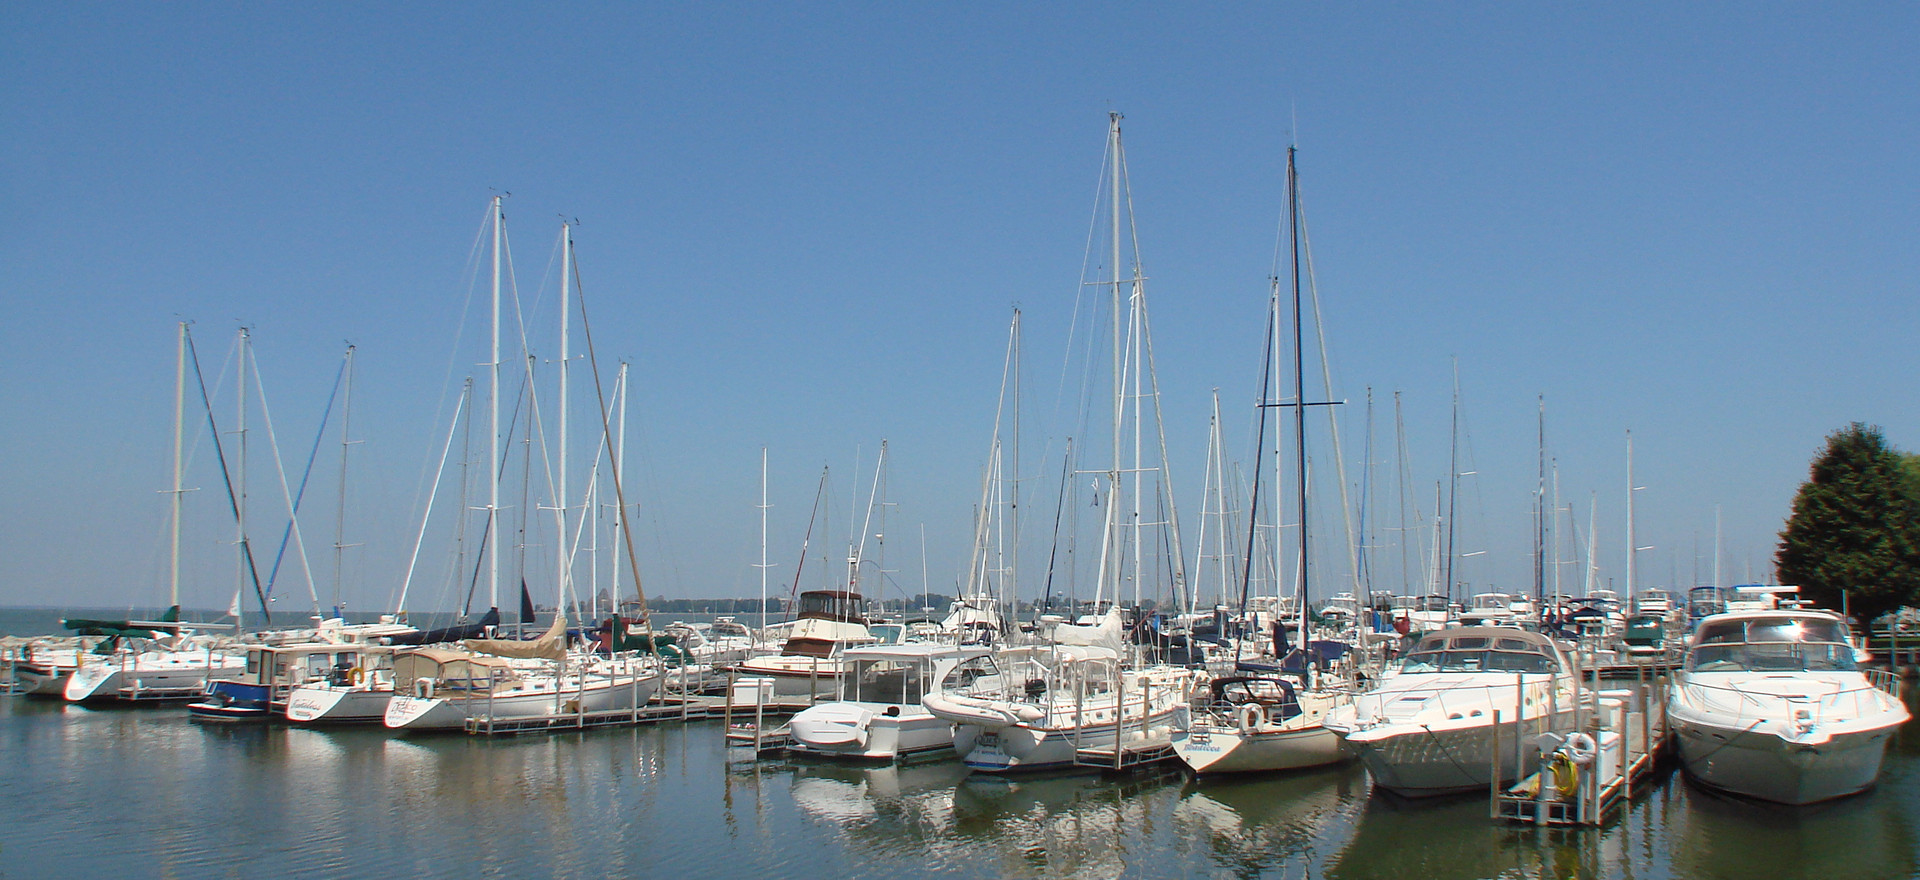 Marinas/Coastal Engineering